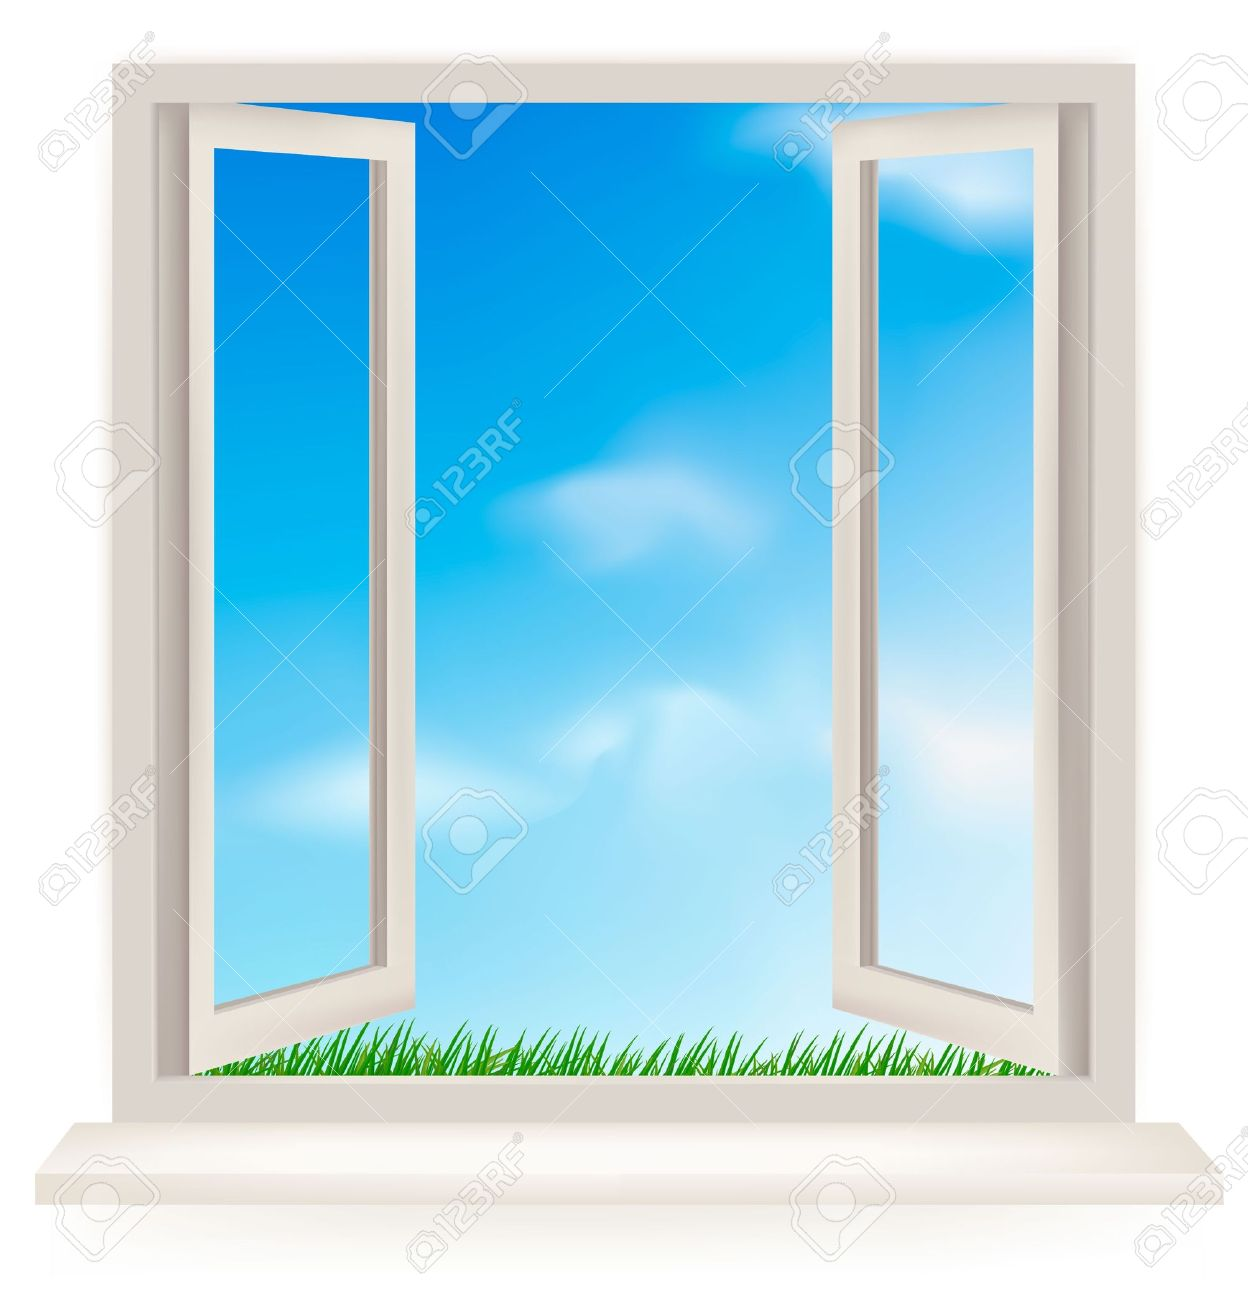 Window clipart rectangle Art clip free window Clipartix